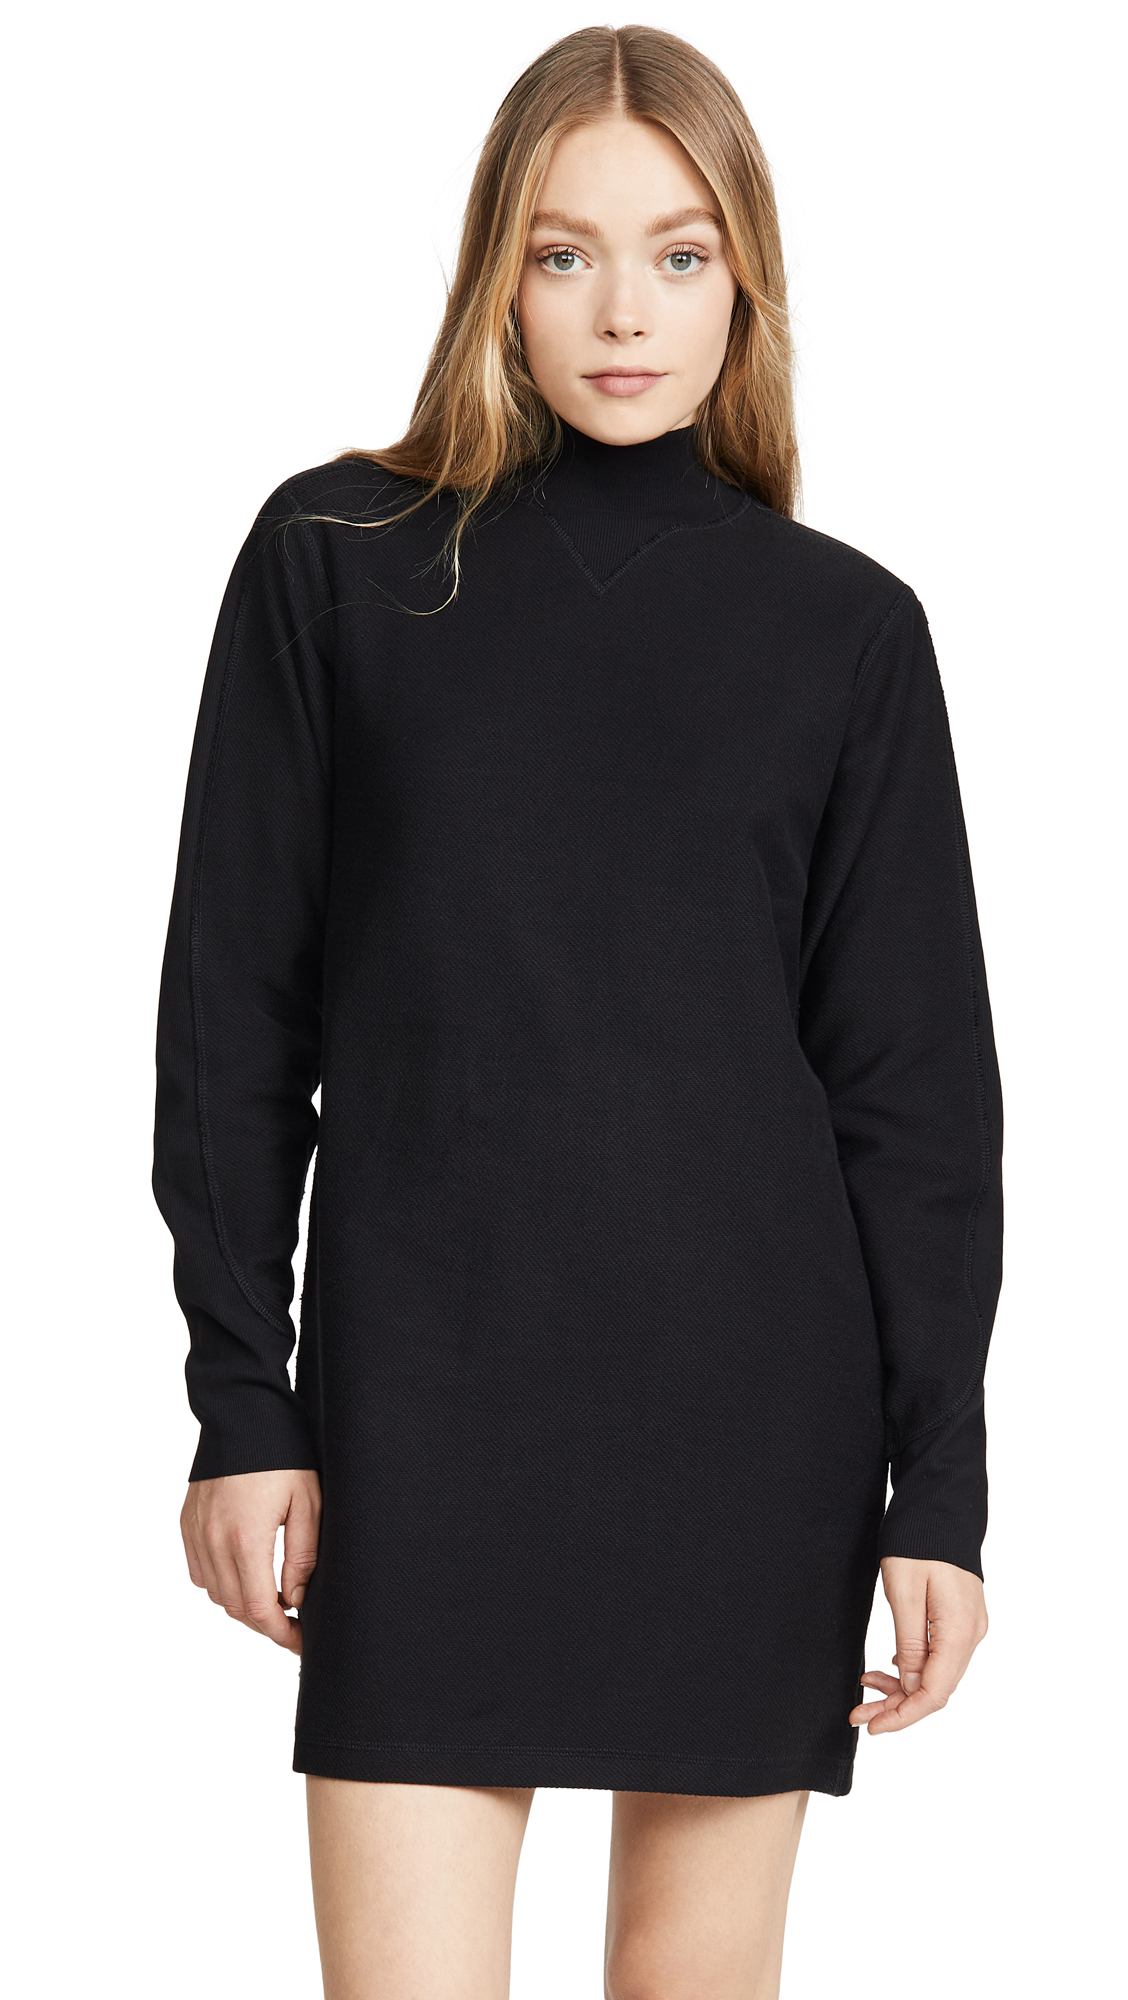 Buy Rag & Bone/JEAN online - photo of Rag & Bone/JEAN Utility Turtleneck Dress